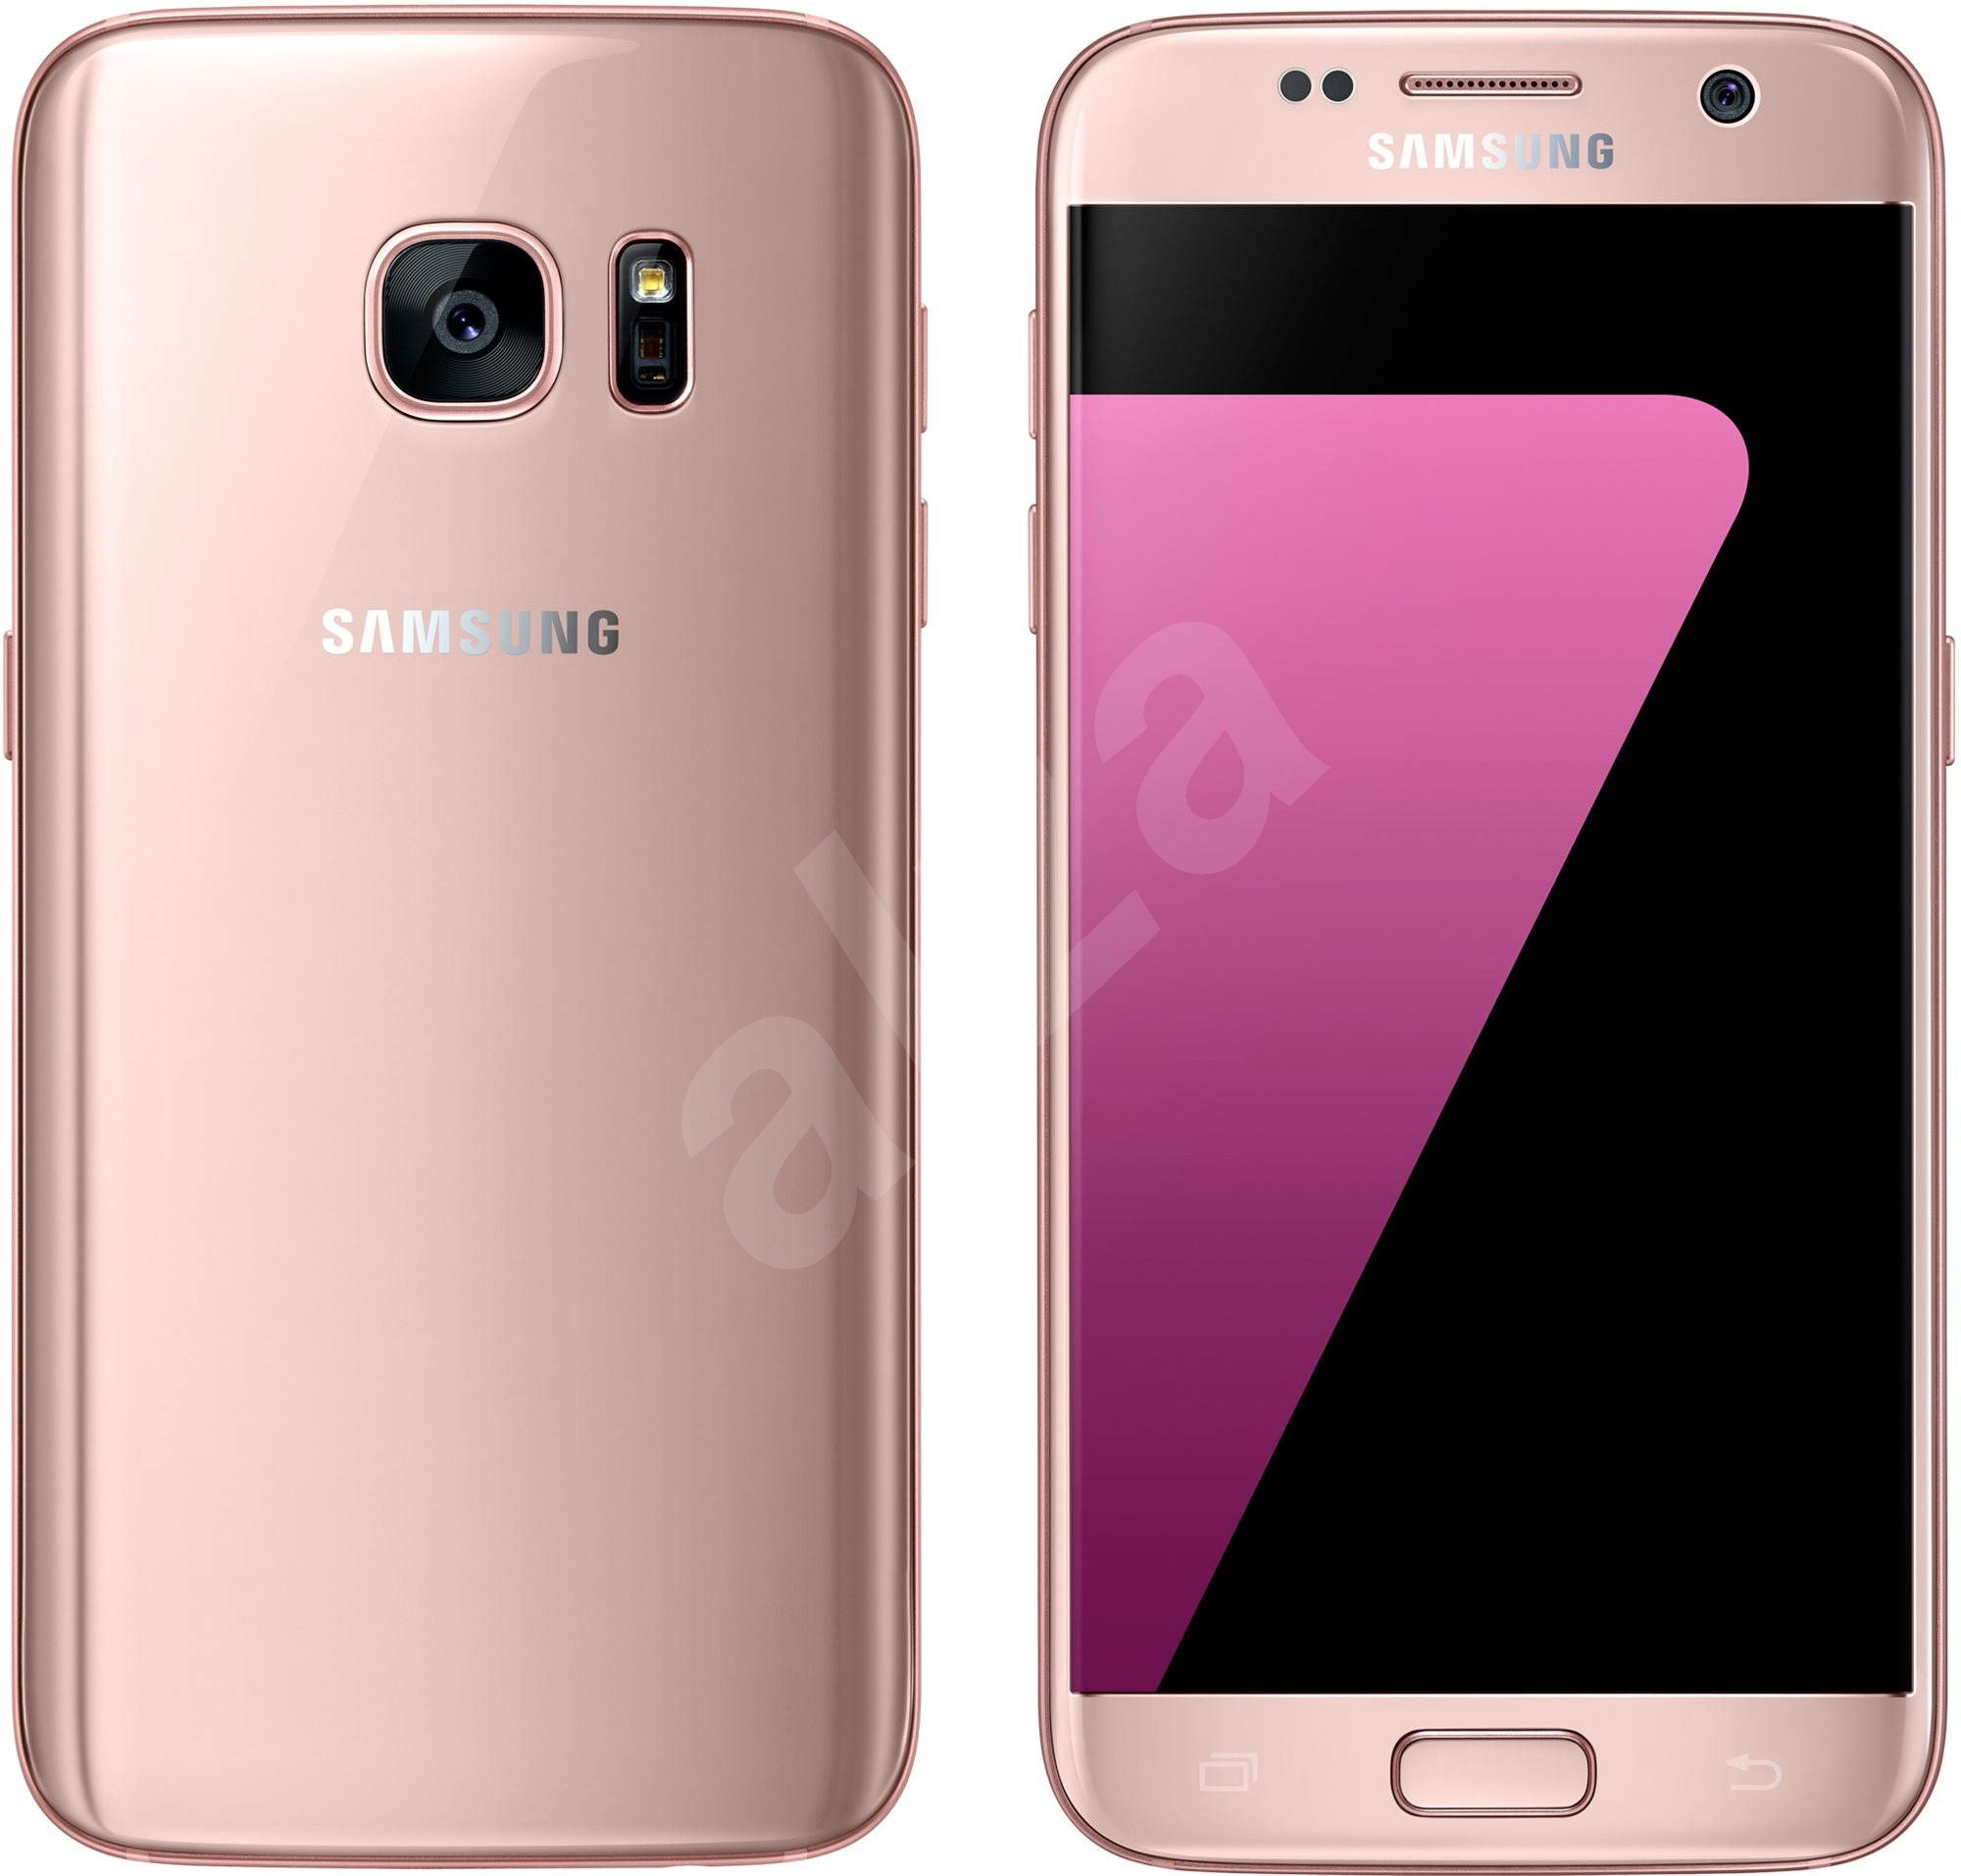 samsung galaxy s7 pink mobile telephone. Black Bedroom Furniture Sets. Home Design Ideas